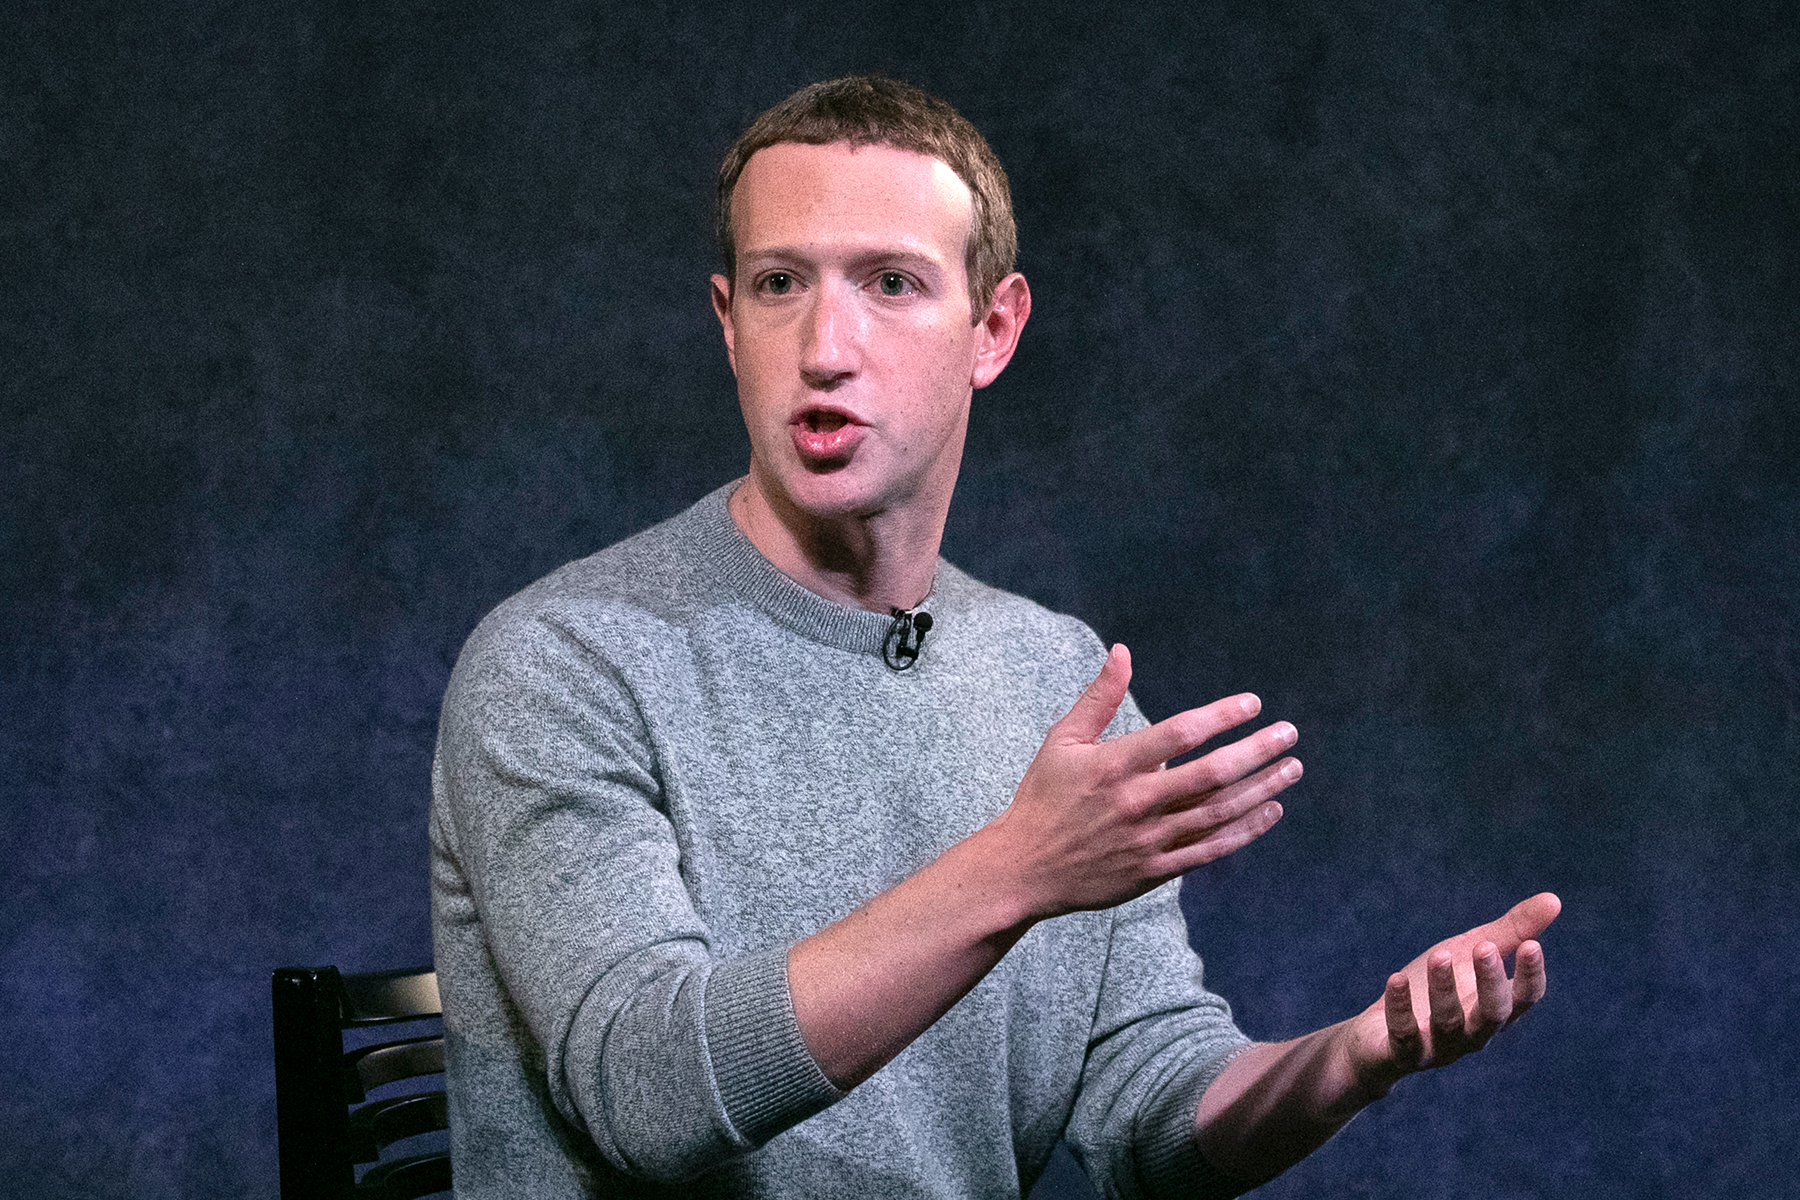 Zuckerberg on Why Facebook Should Get to Operate like a Monopoly: Because China